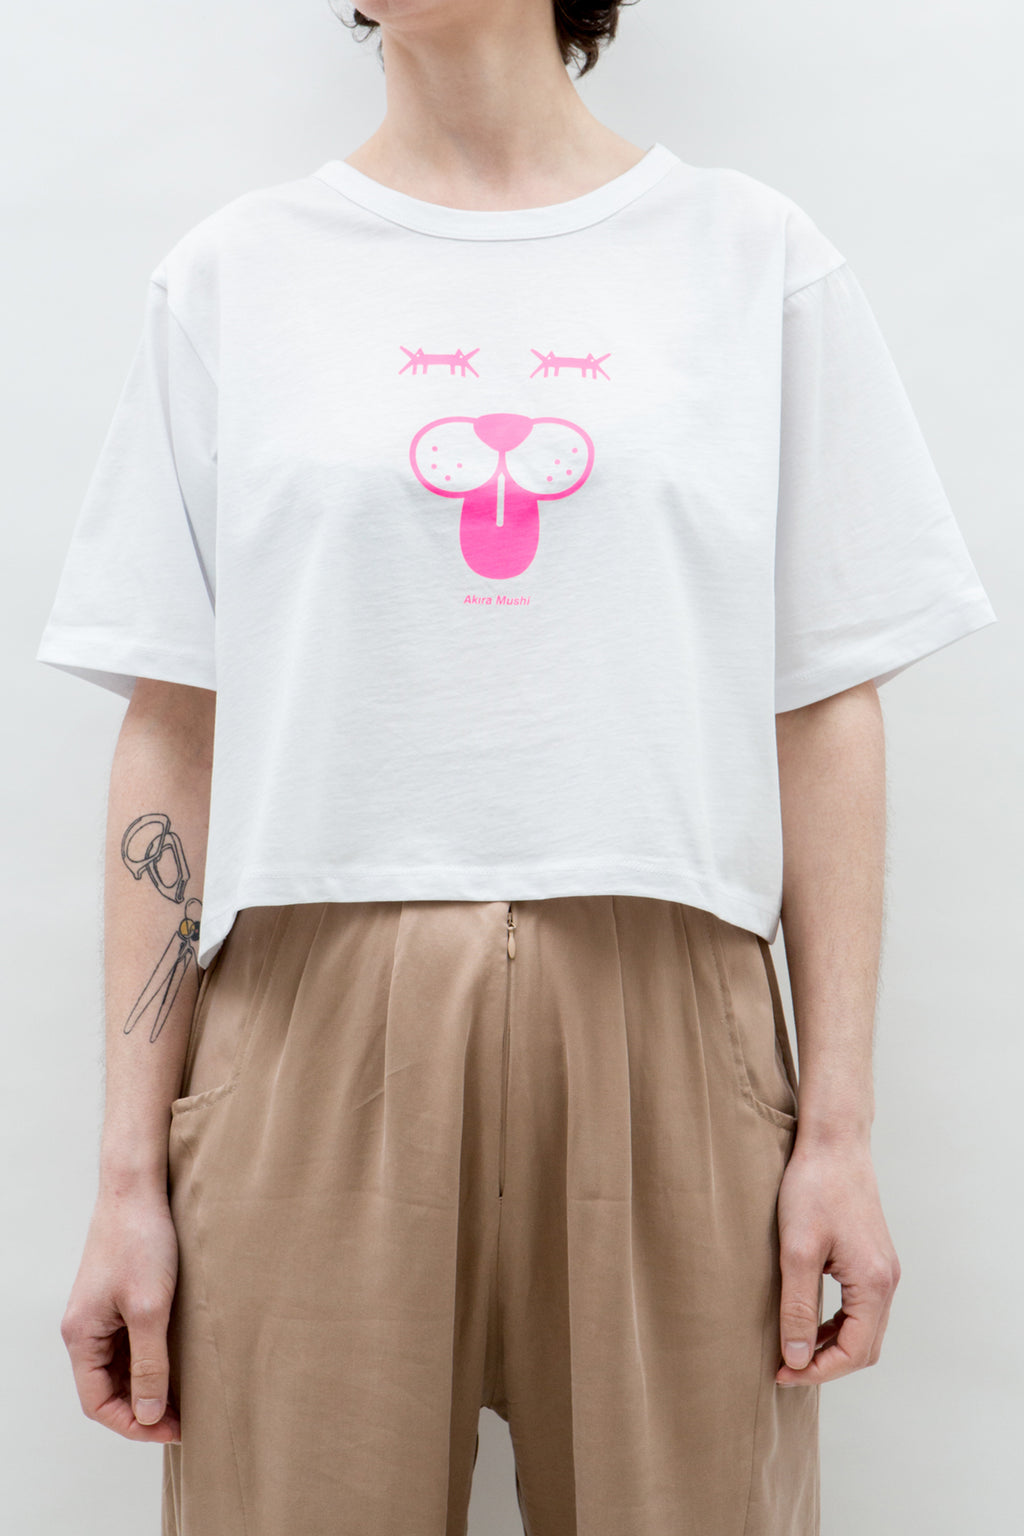 T-SHIRT CROPPED * DOGGIE FACE